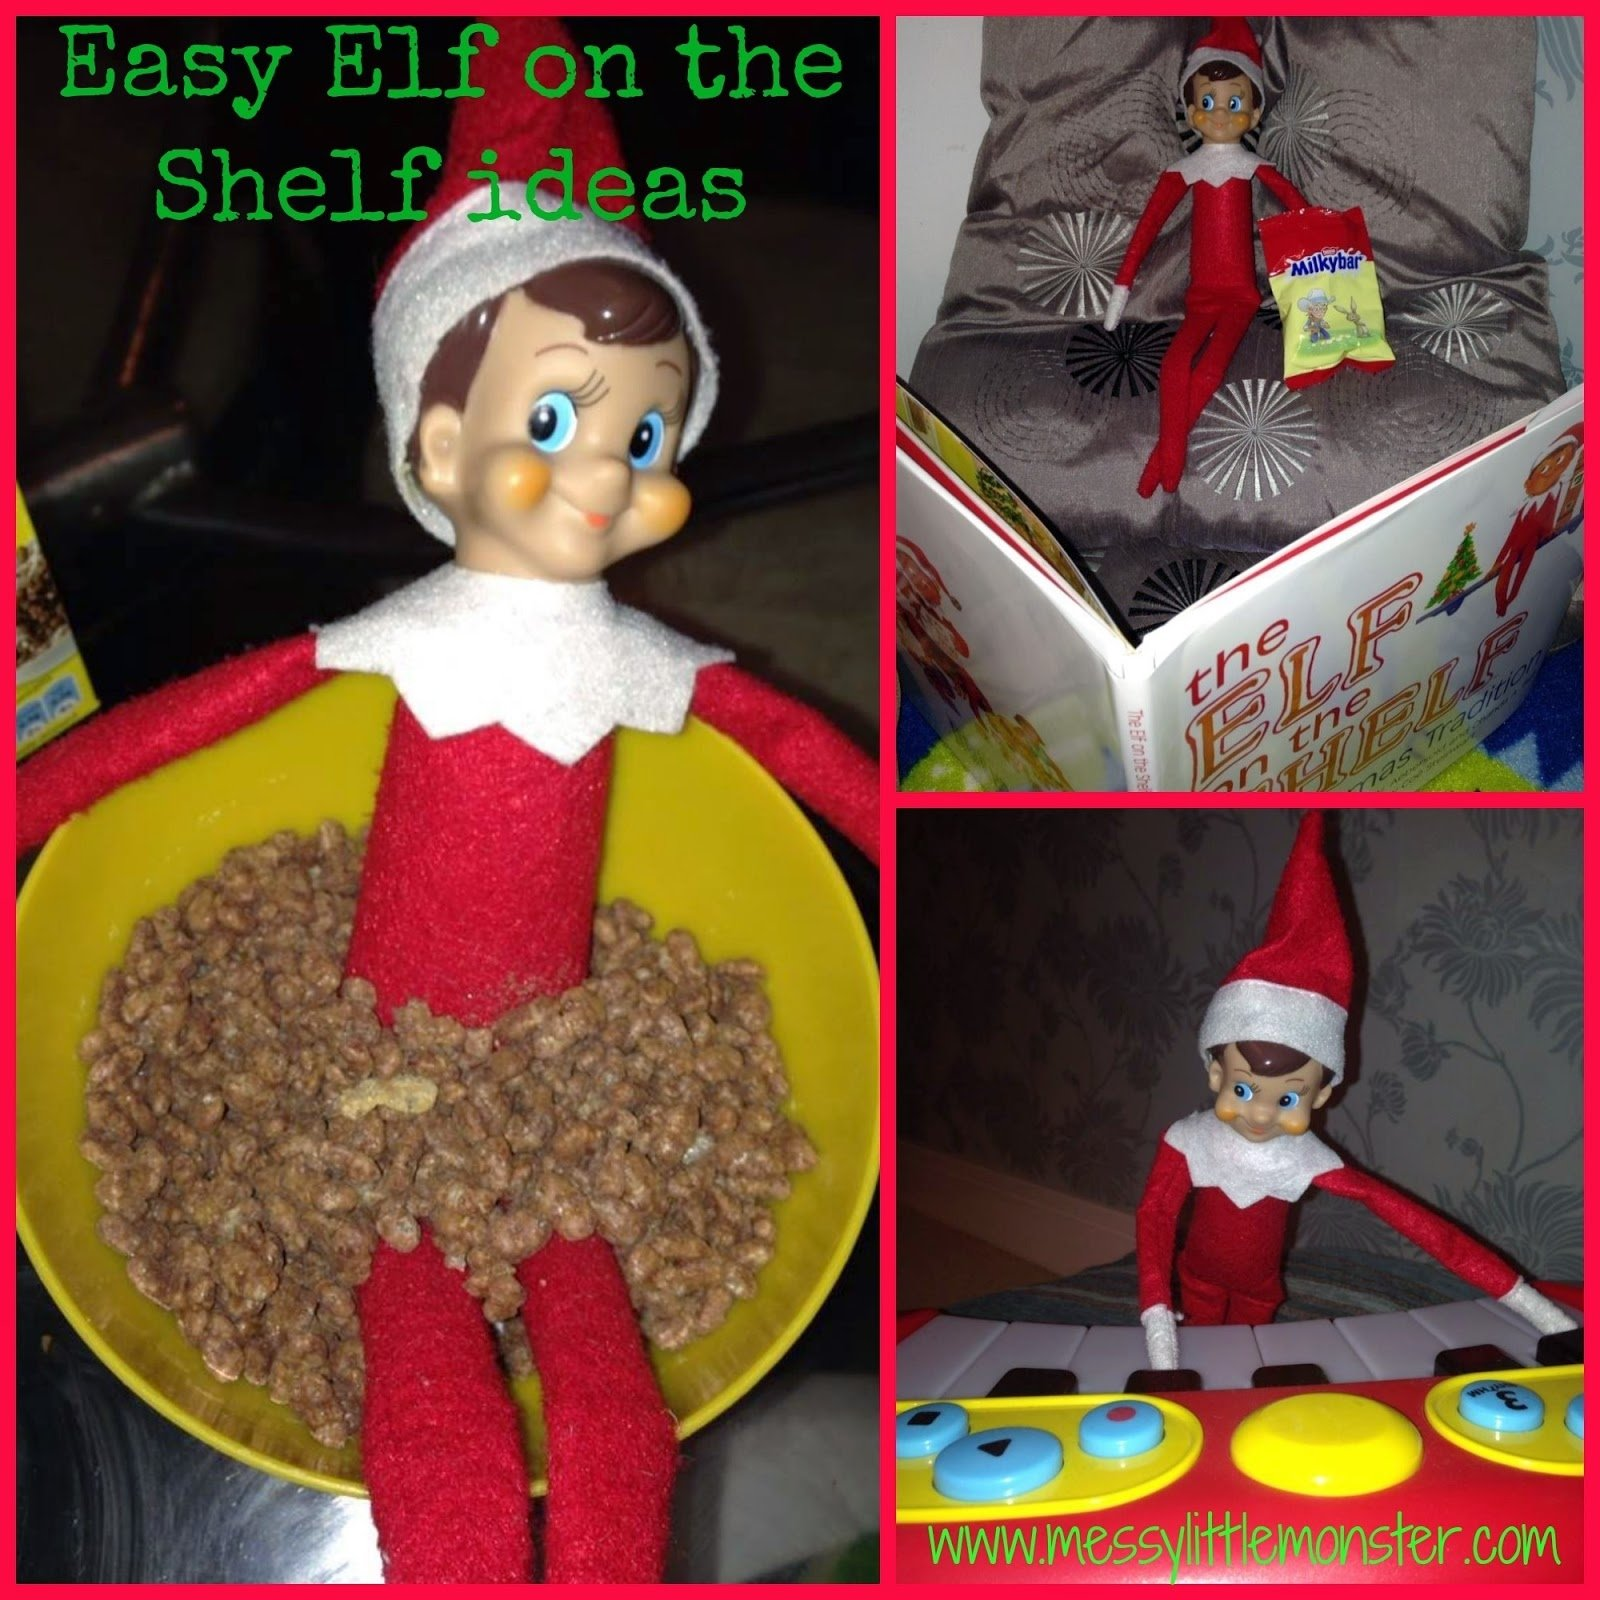 10 Pretty Ideas For Elf On A Shelf easy elf on the shelf ideas messy little monster 9 2021